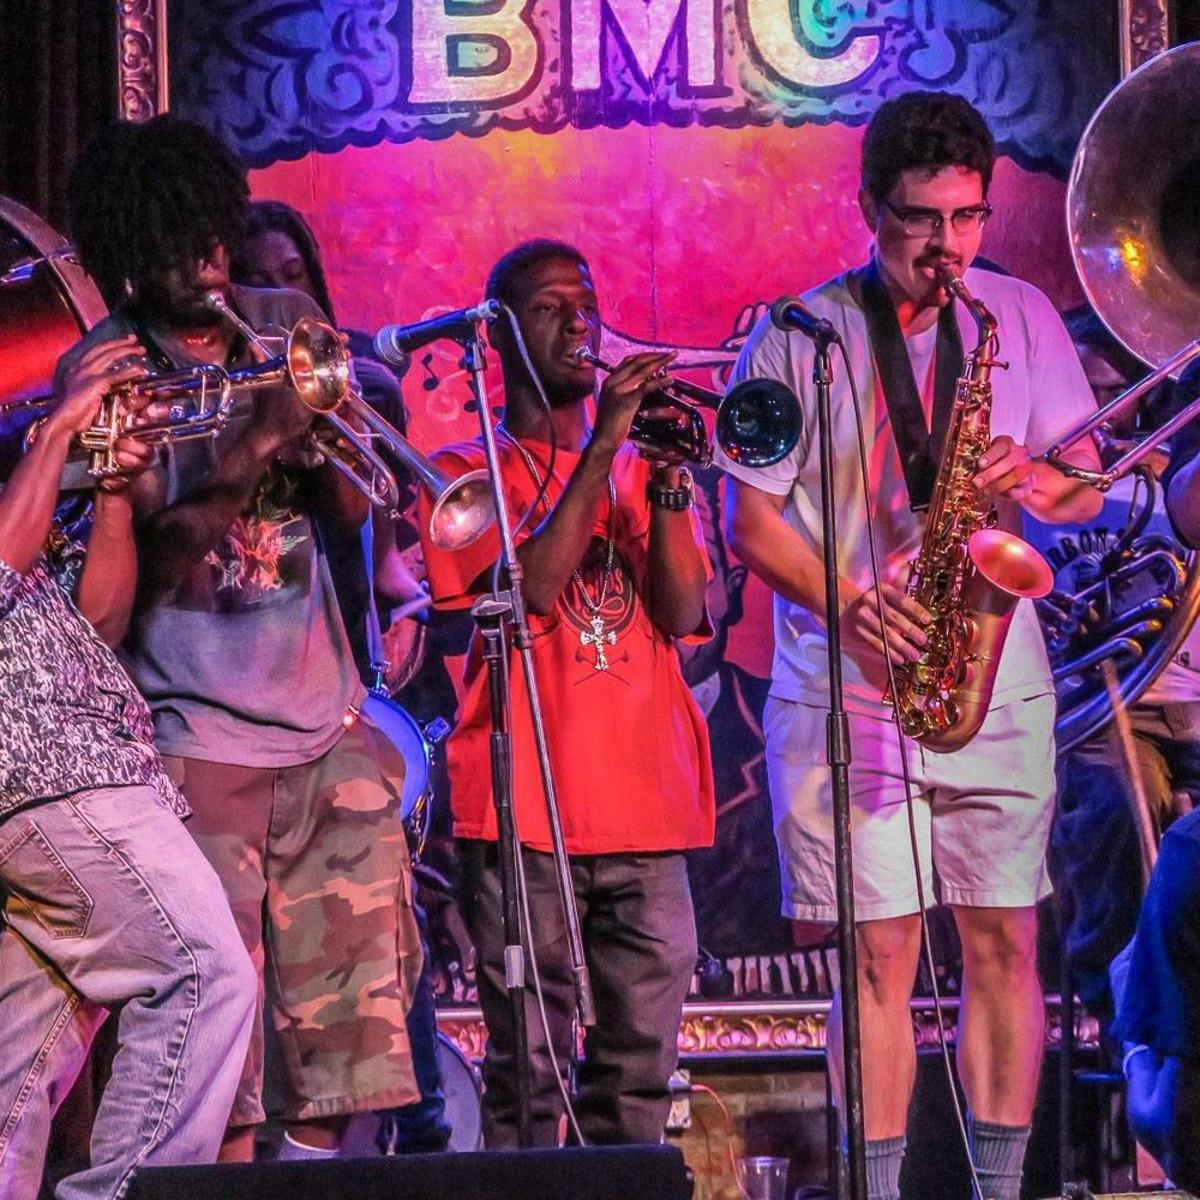 New Orleans music fans cry foul after viral video of brass band